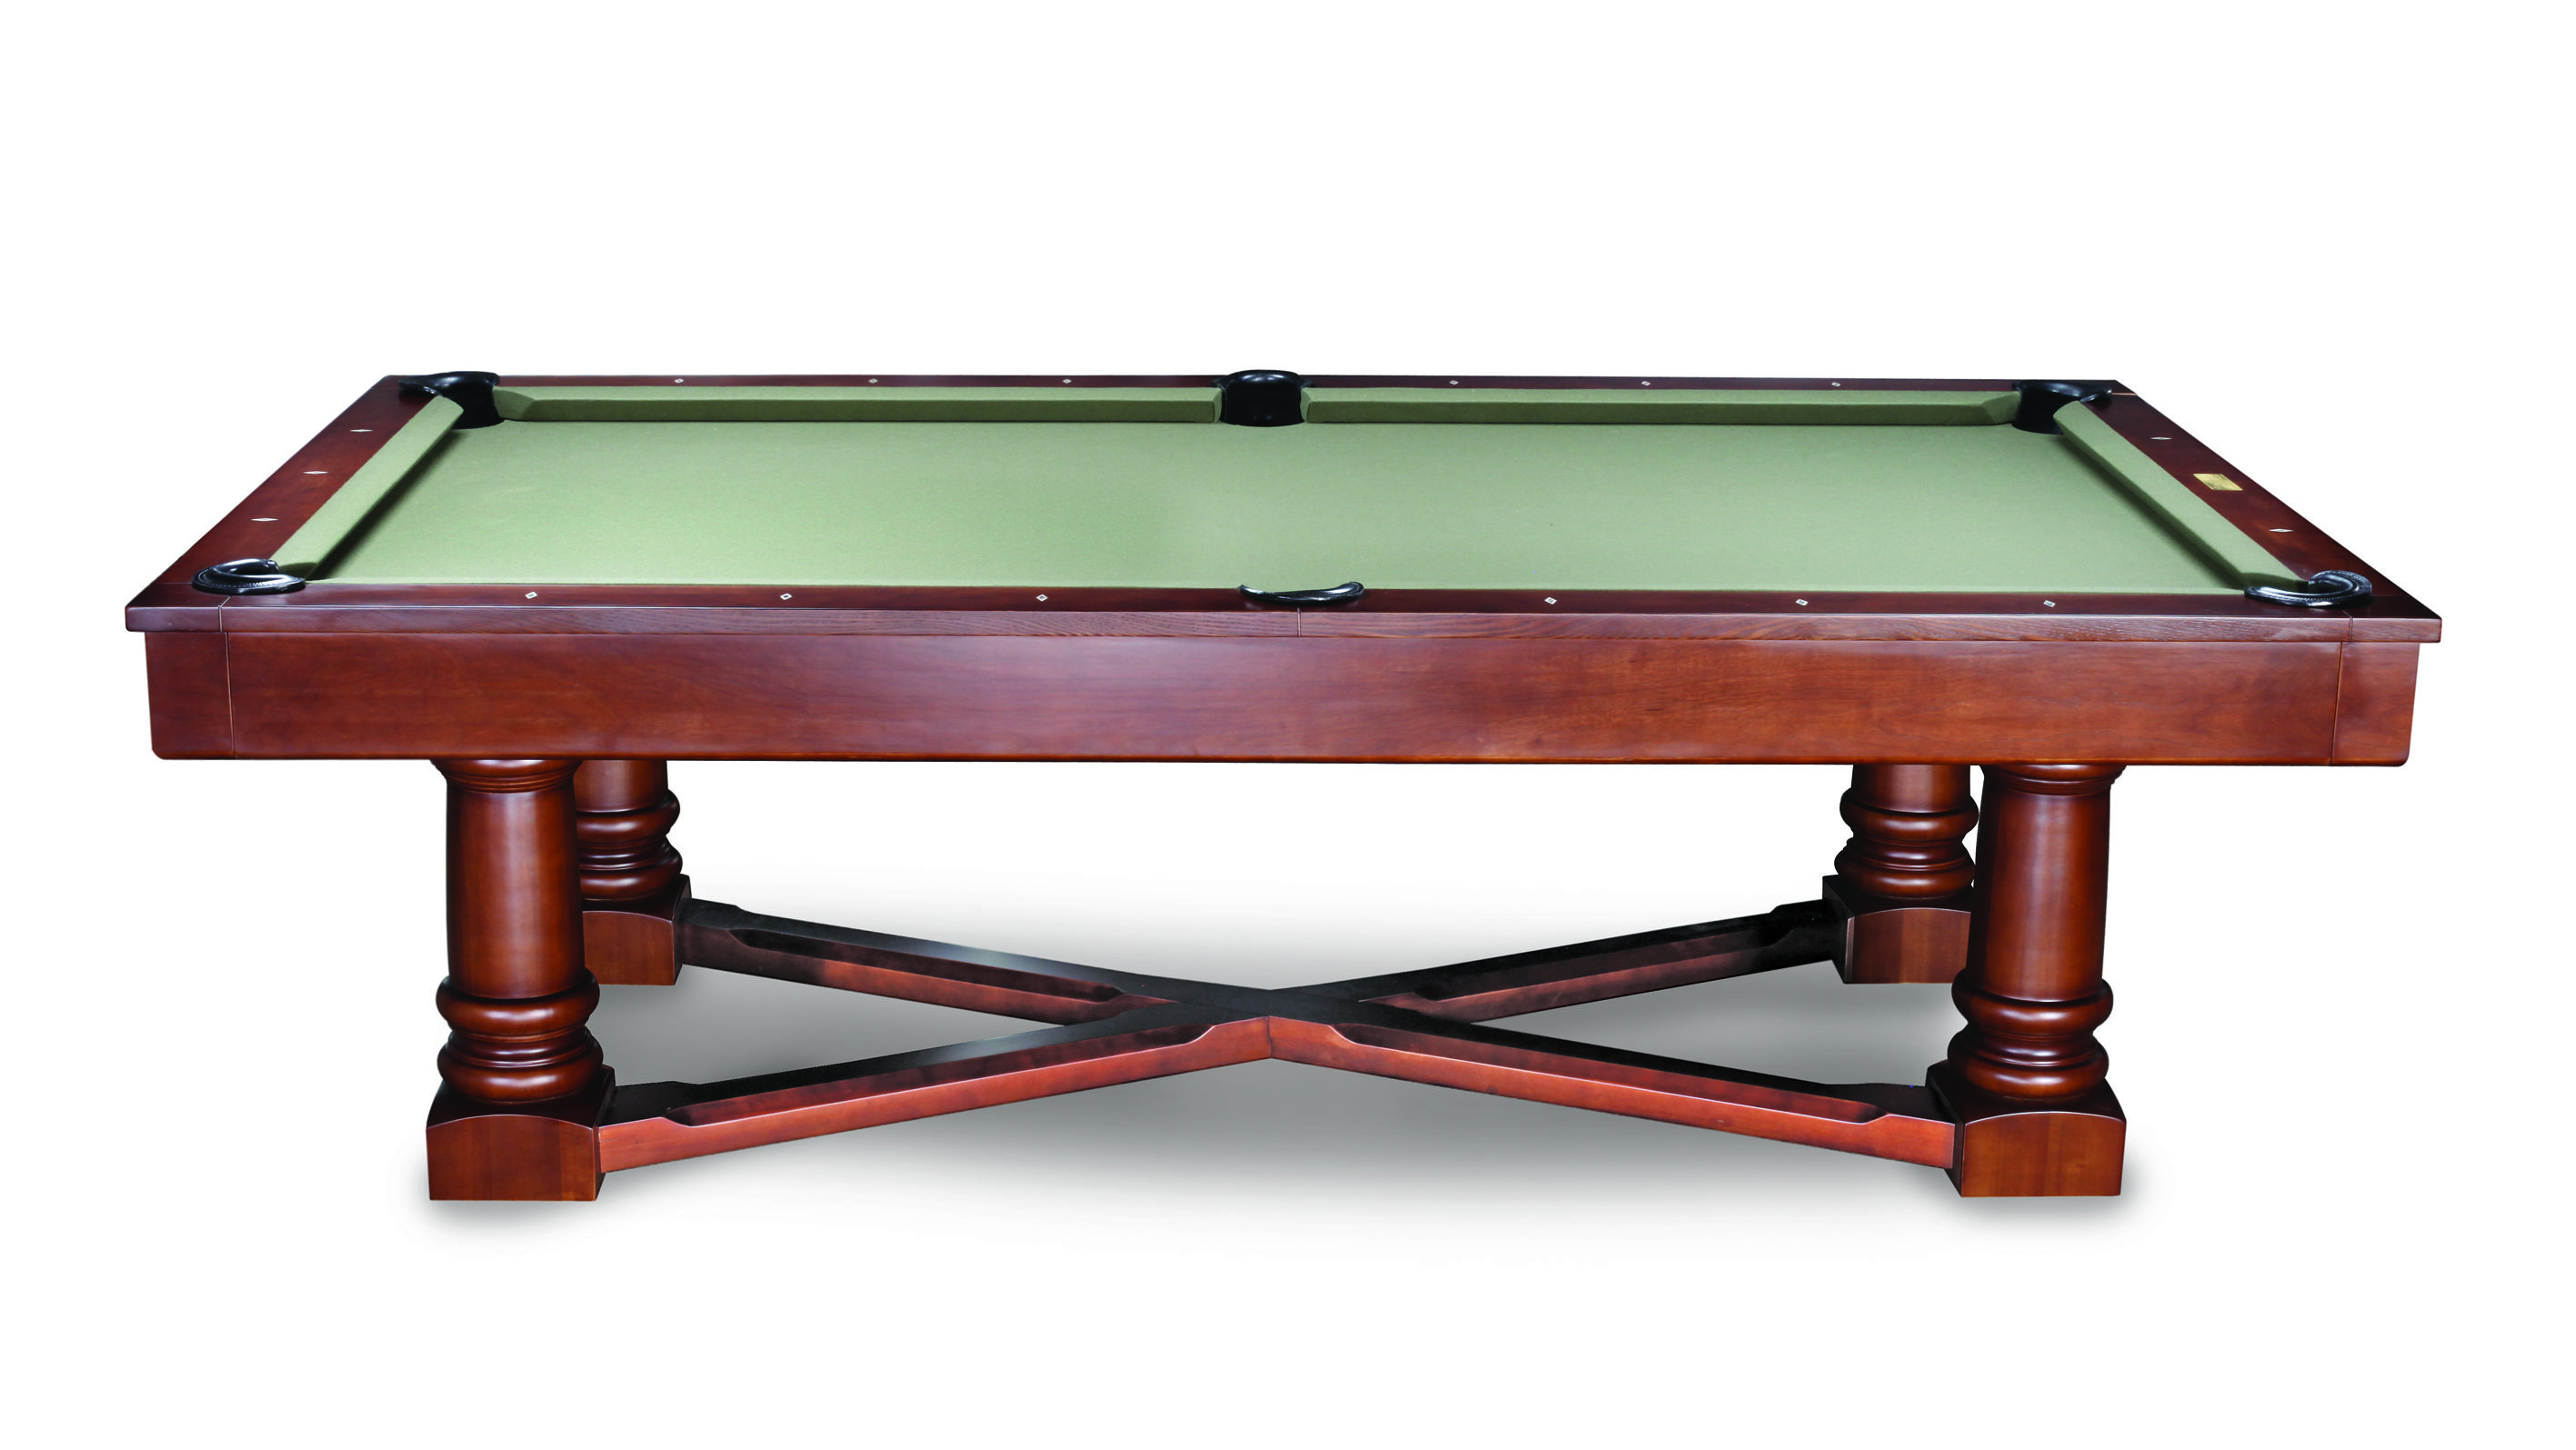 Jefferson Pool Table By Imperial San Diego Pool Tables Cues - Pool table removal near me